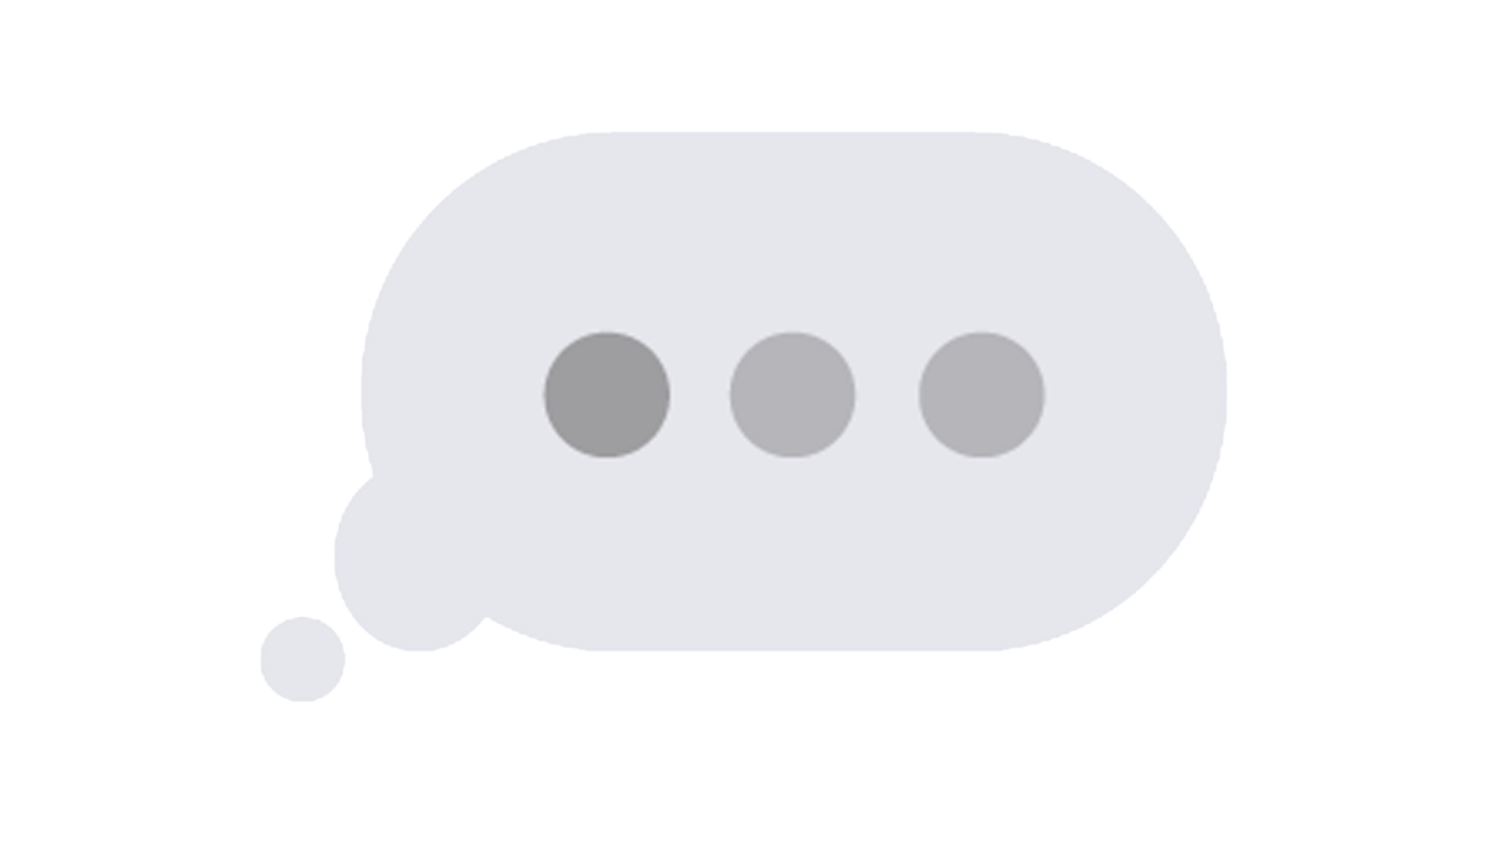 How to Disable iMessage Typing Bubble Notification on iPhone.